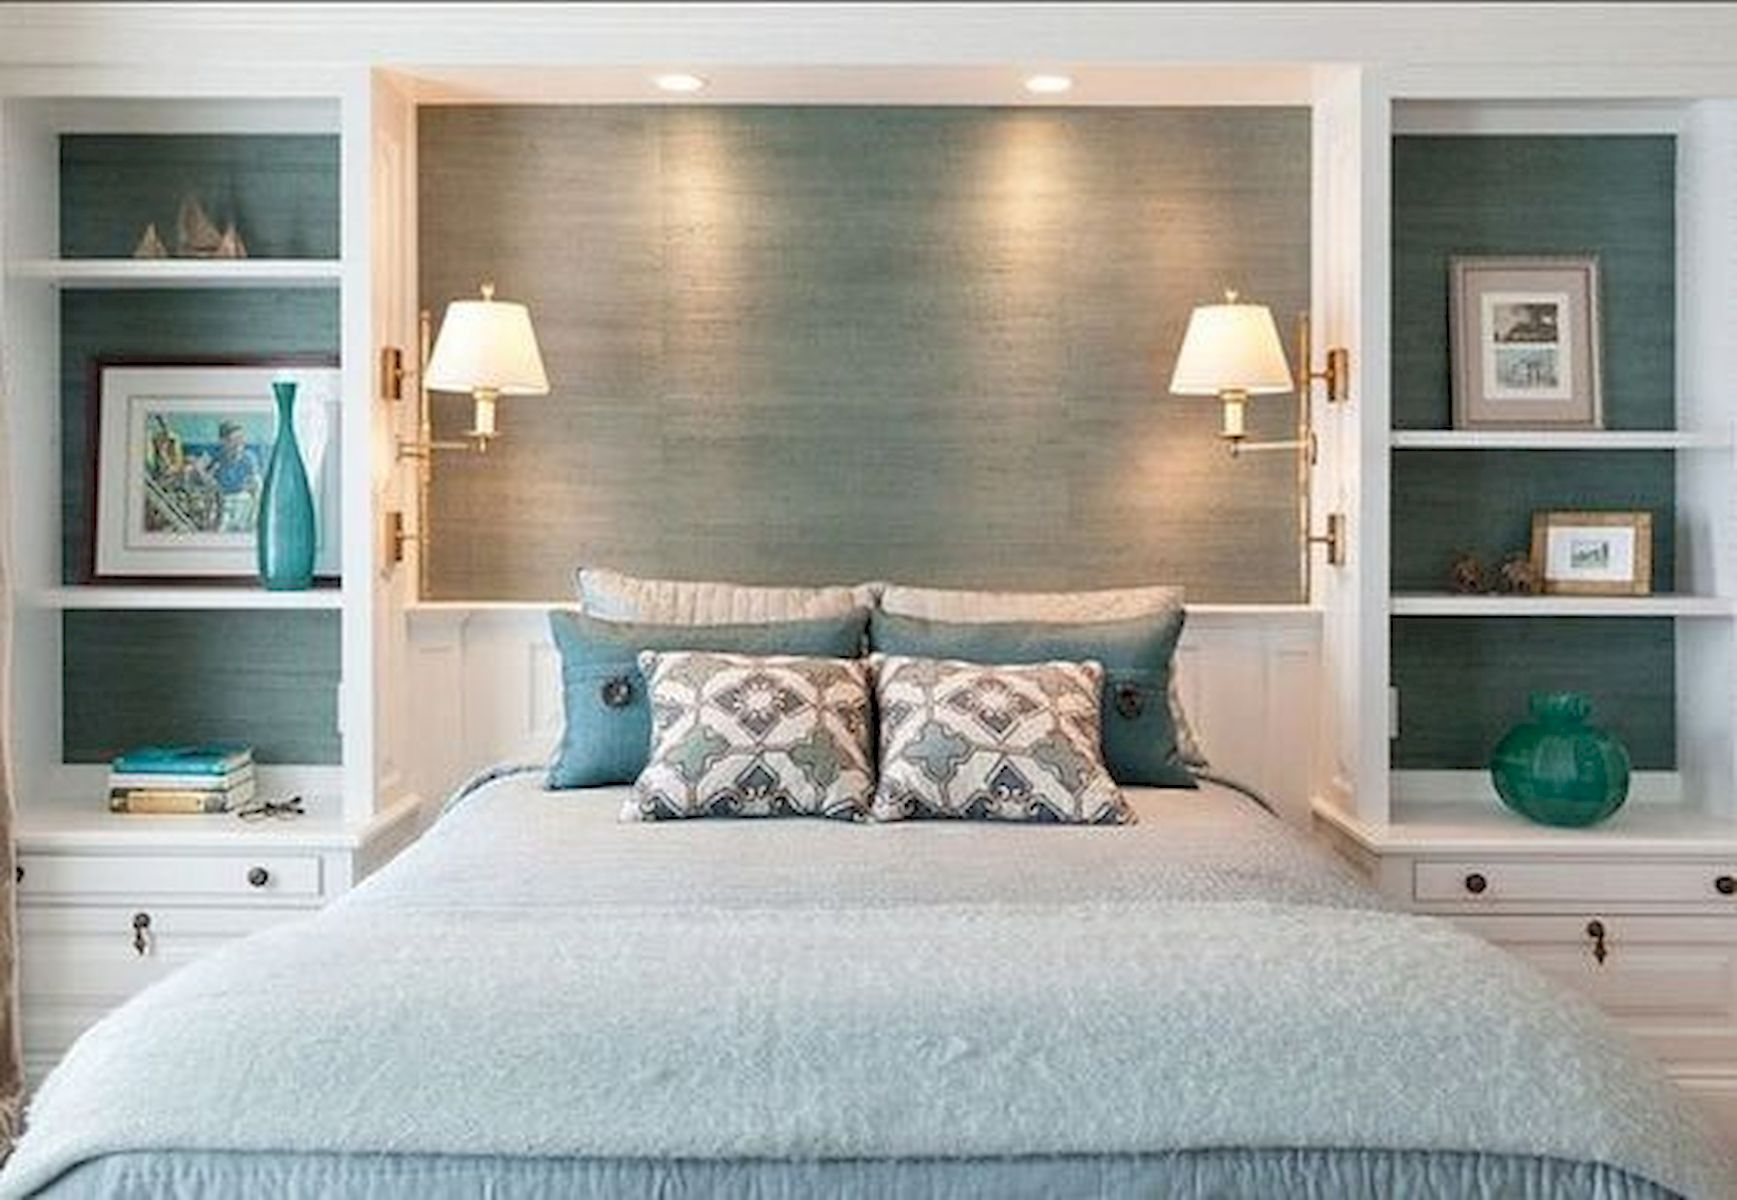 44 Awesome White Master Bedroom Design and Decor Ideas For Any Home Design (22)